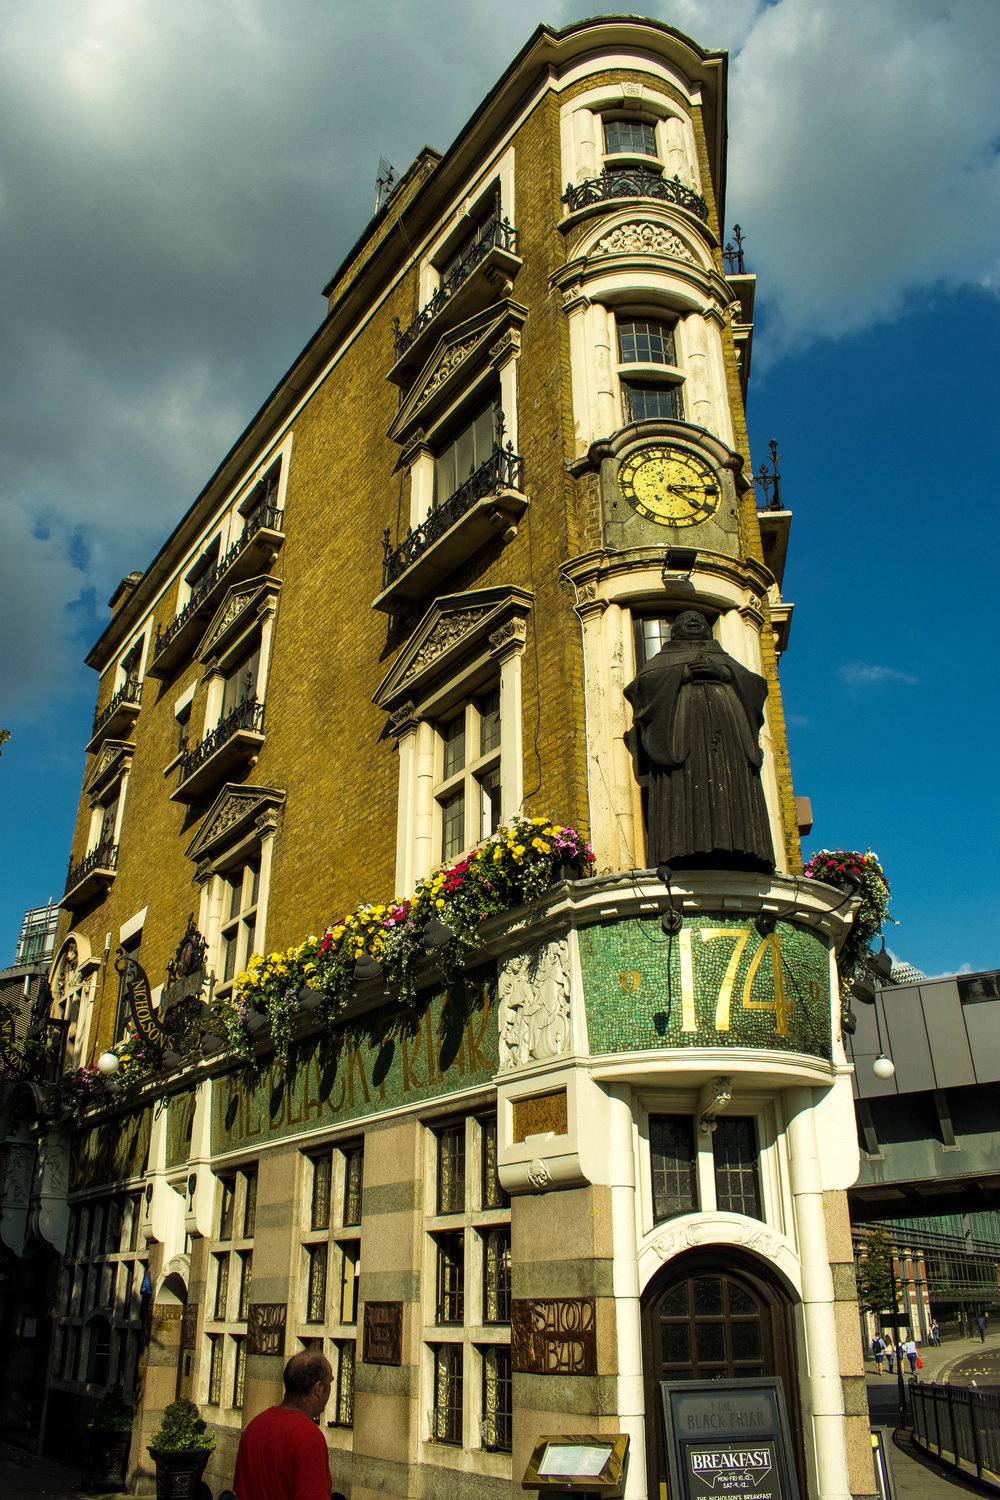 The Blackfriar ~ London